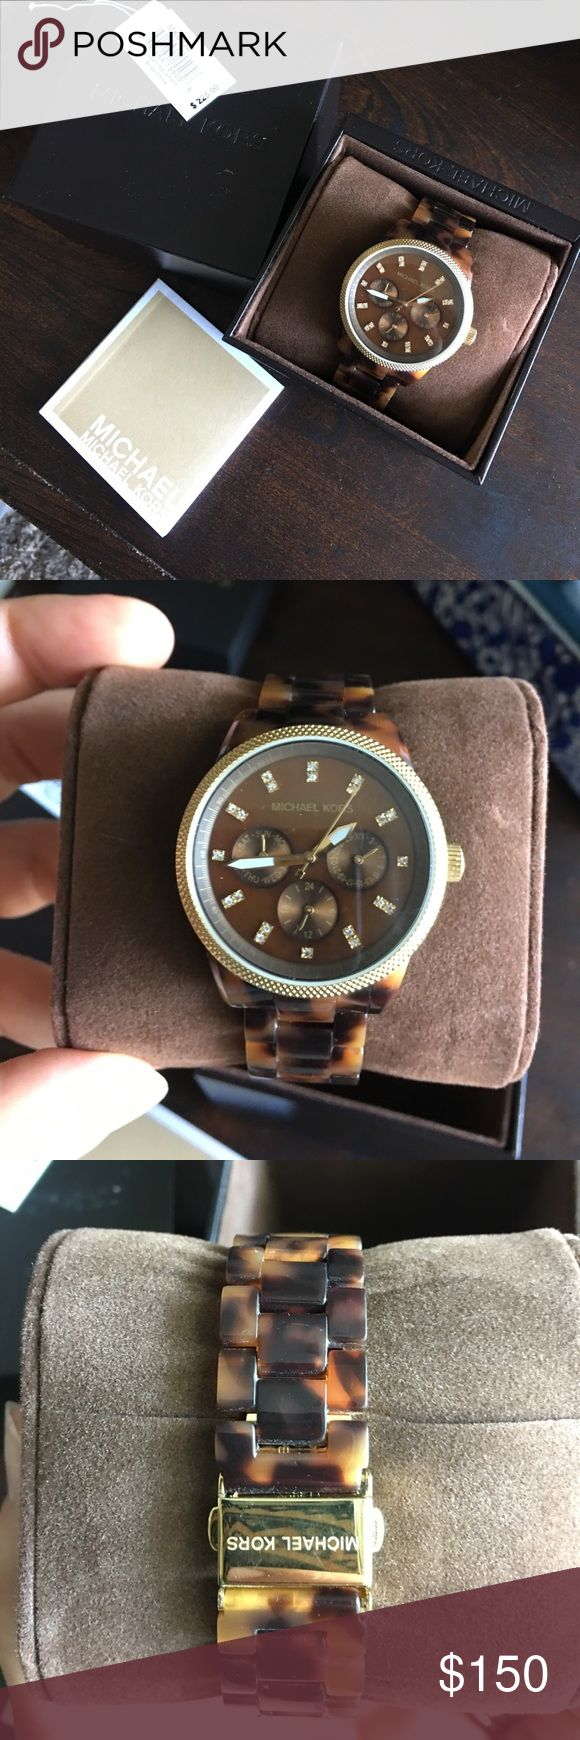 Michael Kors tortoise watch Tortoise watch. Tag shown. Manual included. Michael Kors Accessories Watches